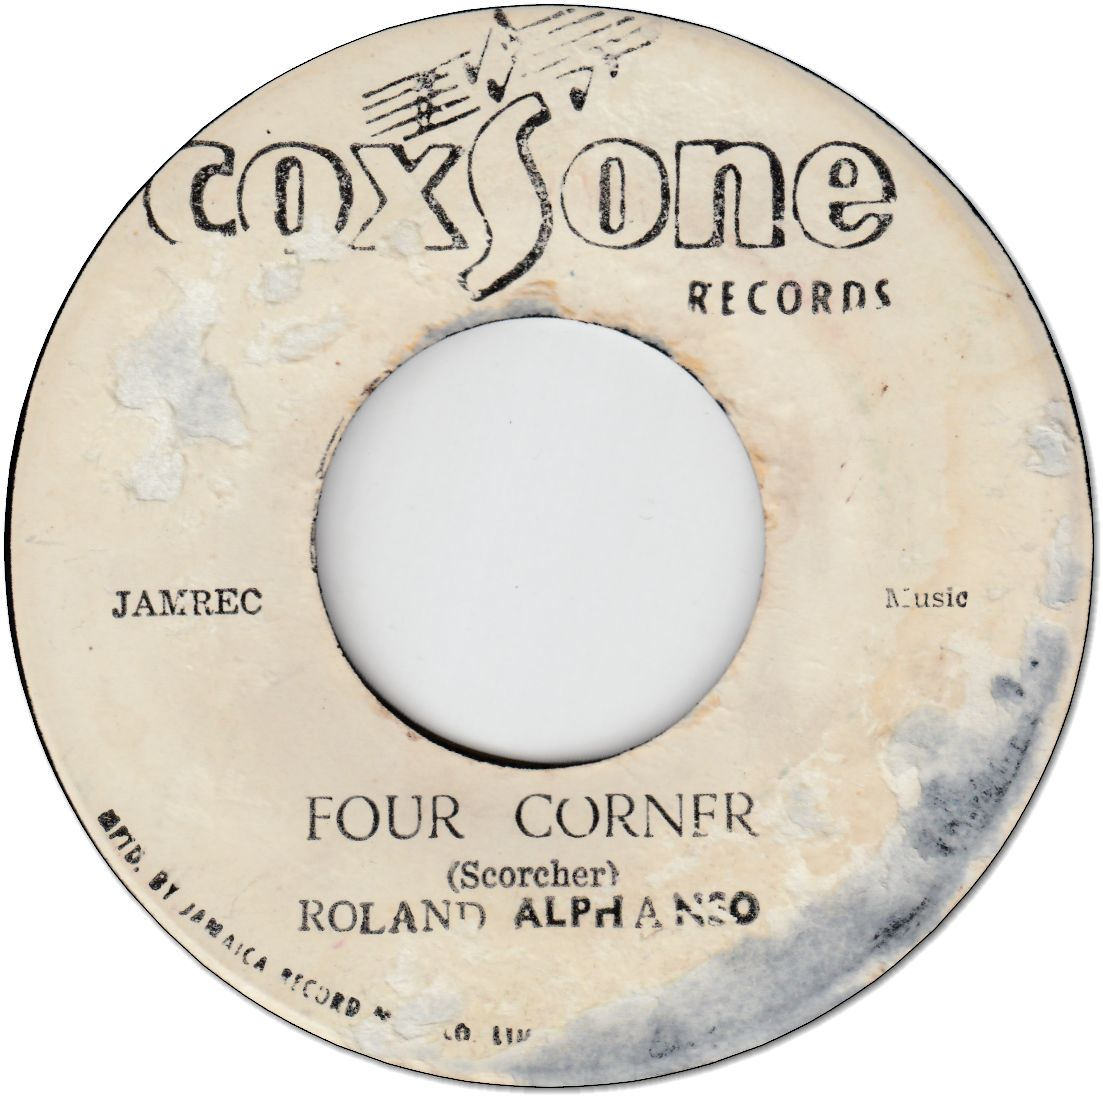 FOUR CORNER (VG) / LOVE OR BE LOVE (VG)